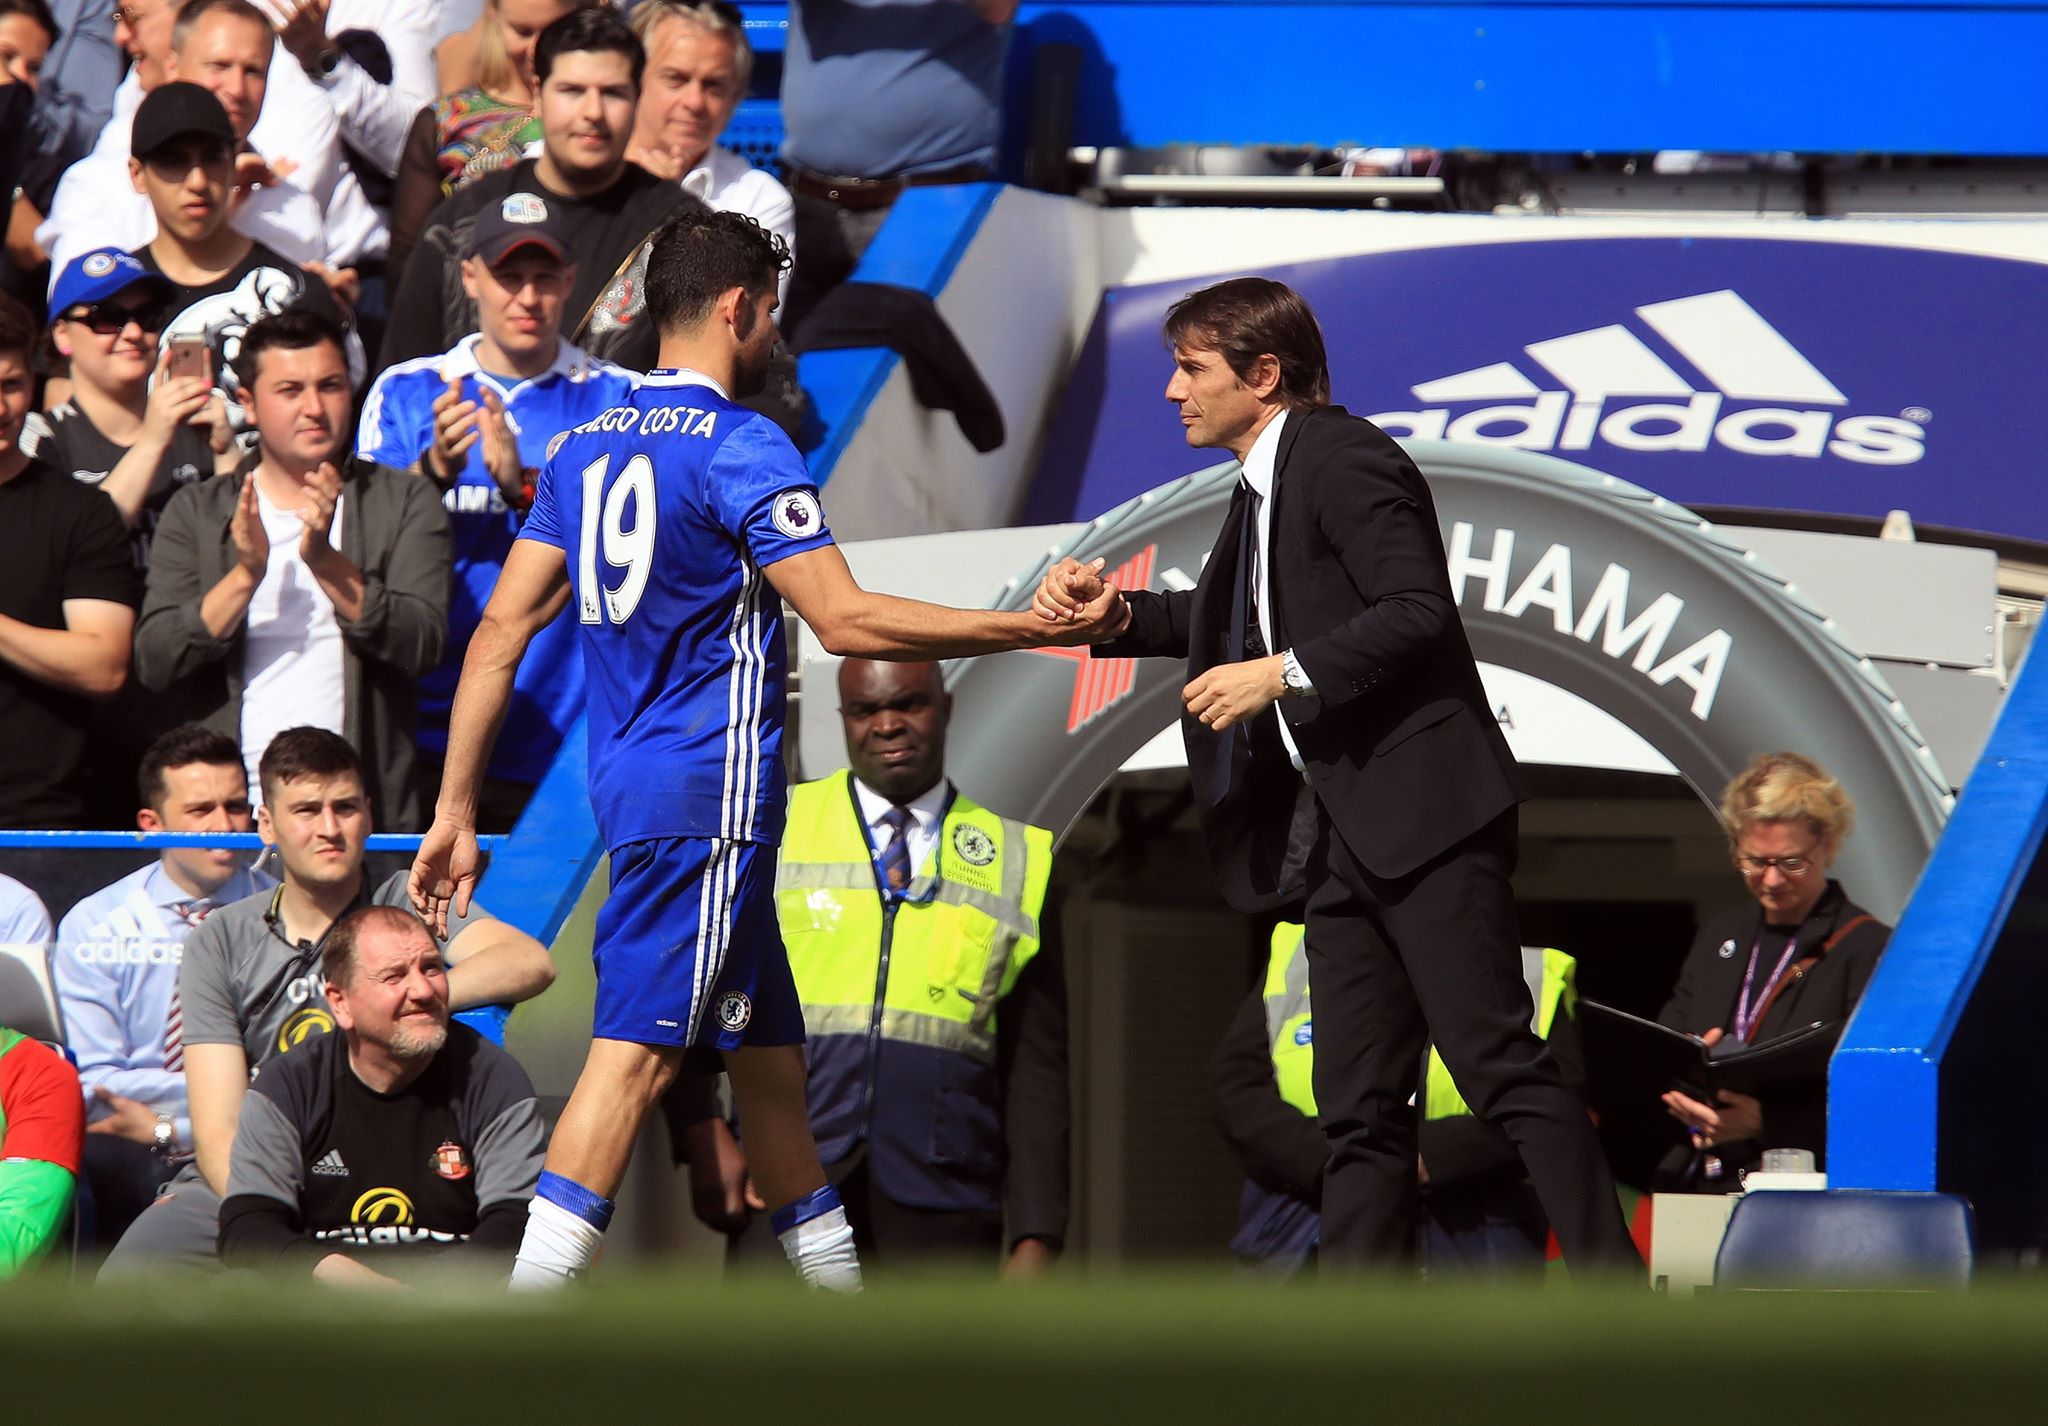 Right decision: Chelsea right to sell Costa - Zola